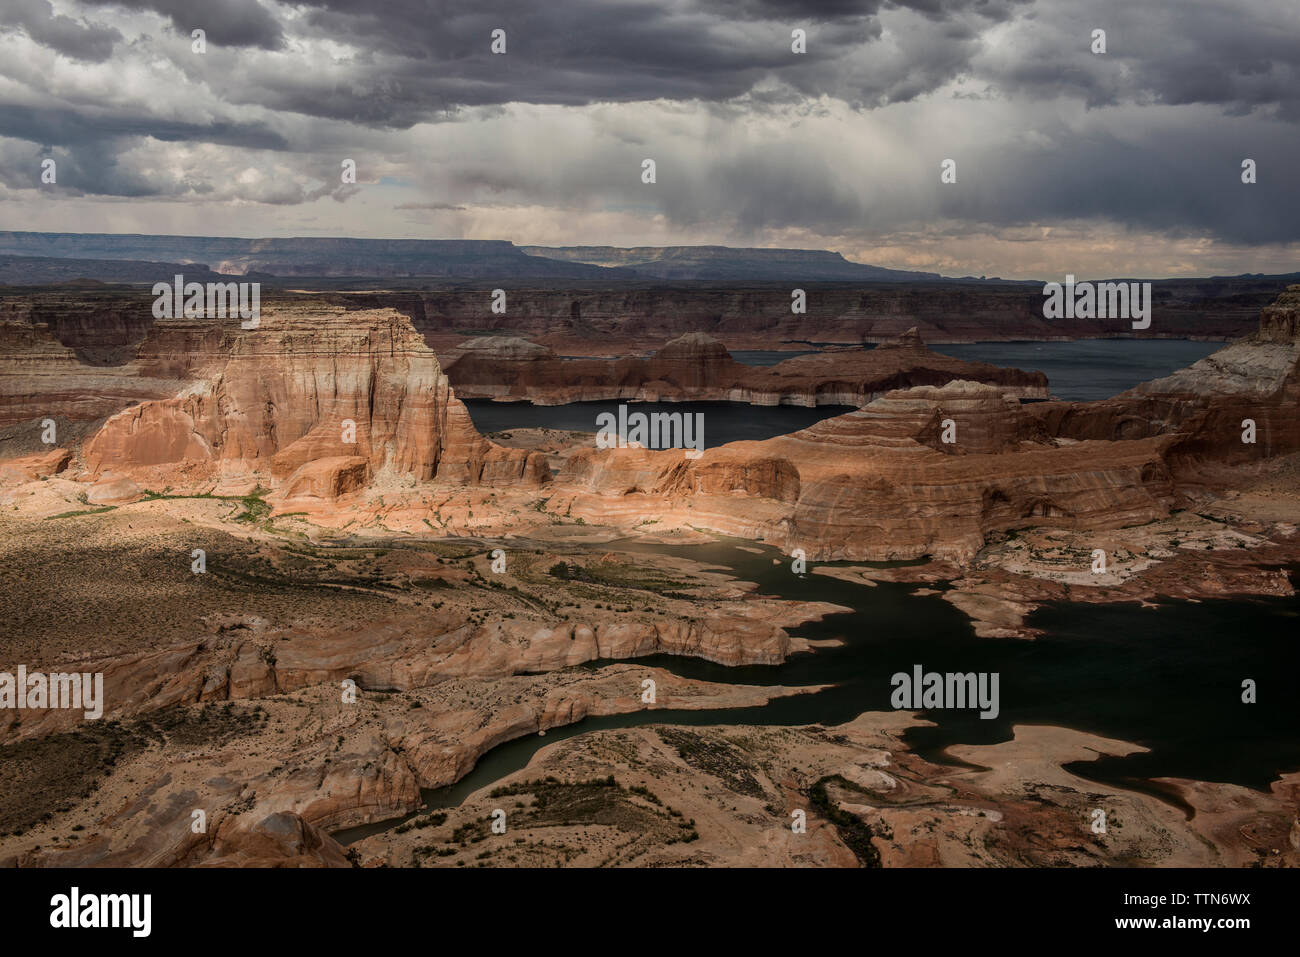 High angle view of rock formations against stormy clouds at Grand Staircase-Escalante National Monument Stock Photo